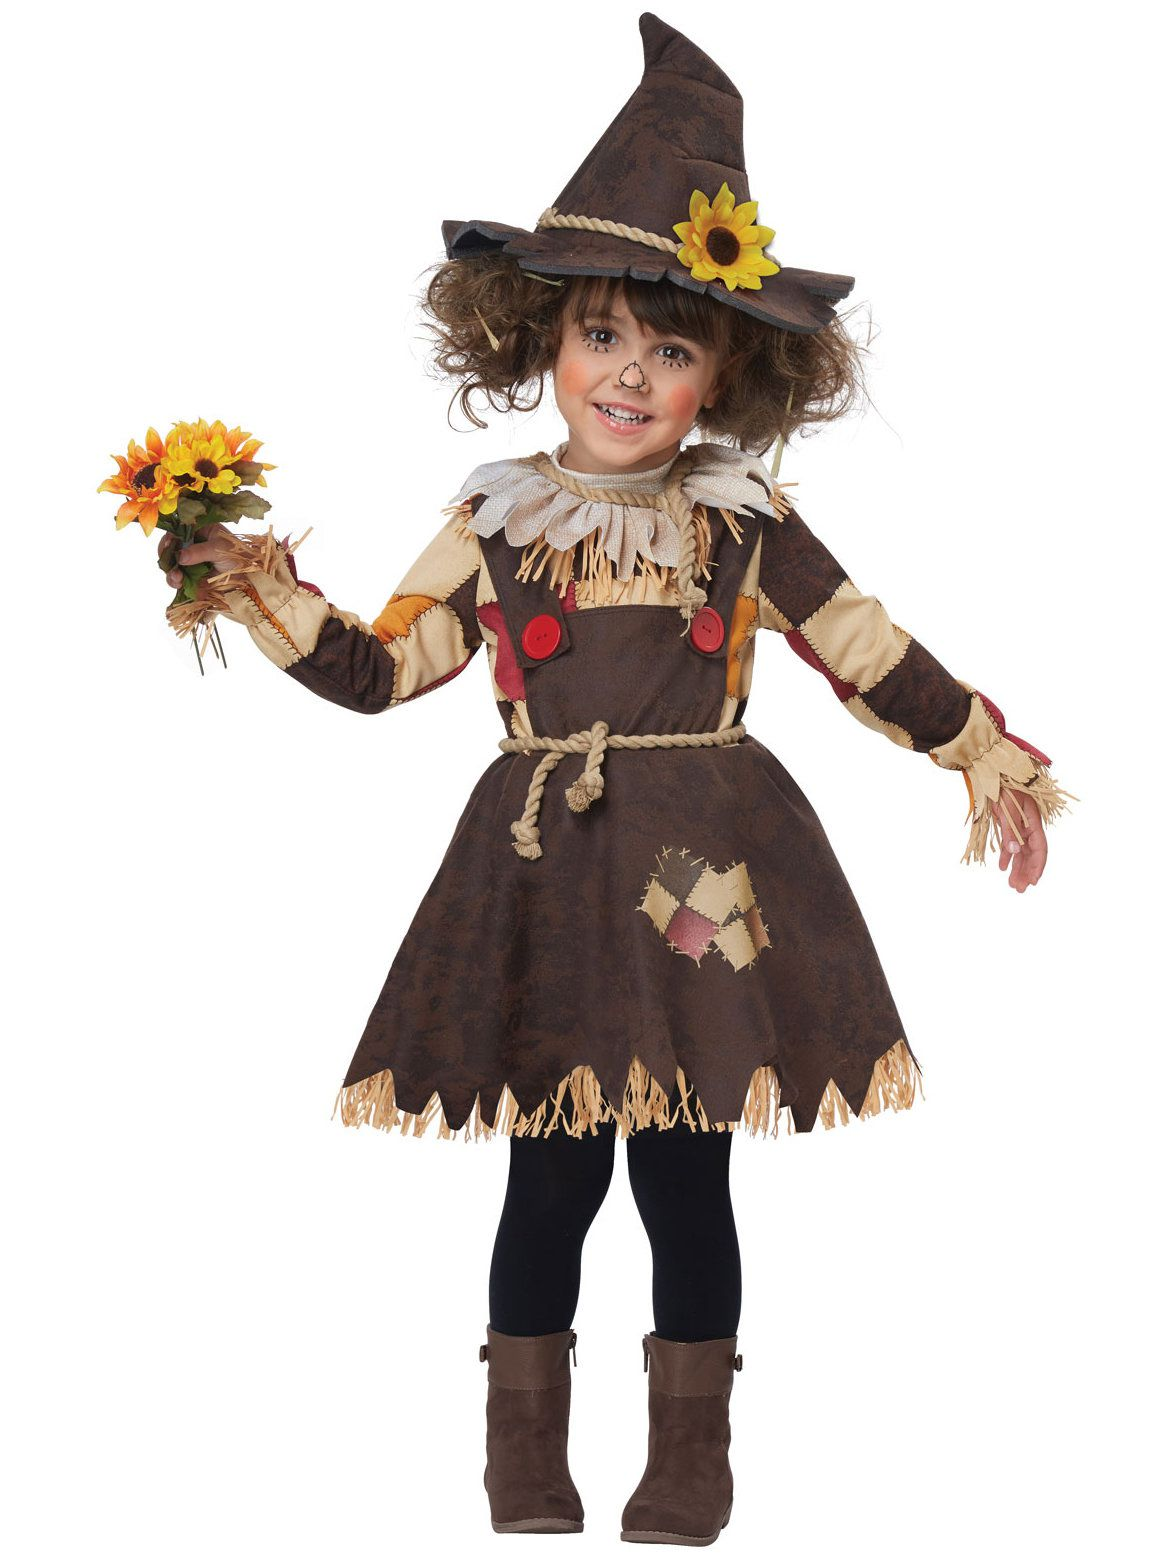 With more than Halloween costumes perfect for , we are your Halloween headquarters and your one stop shop for everything Halloween -- costumes, hats, wigs and props, as well as home decor, trick or treat bags, giveaways, candy, crafts, party decorations and so much more.